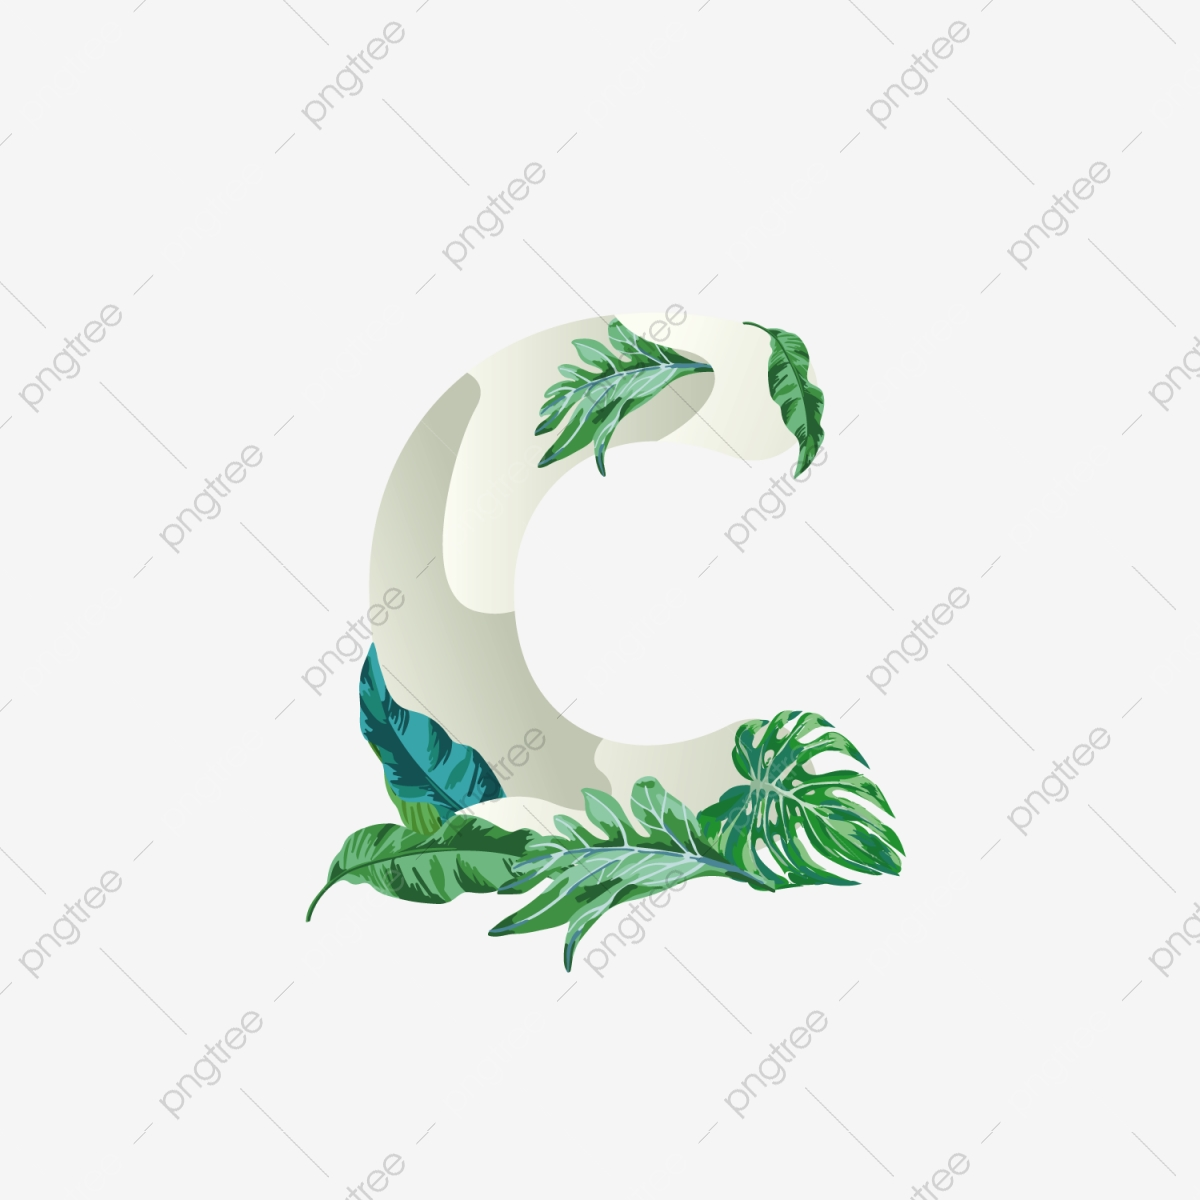 leaves ornament png images vector and psd files free download on pngtree https pngtree com freepng letter c initial logo element with tropical leaves ornament 5386311 html